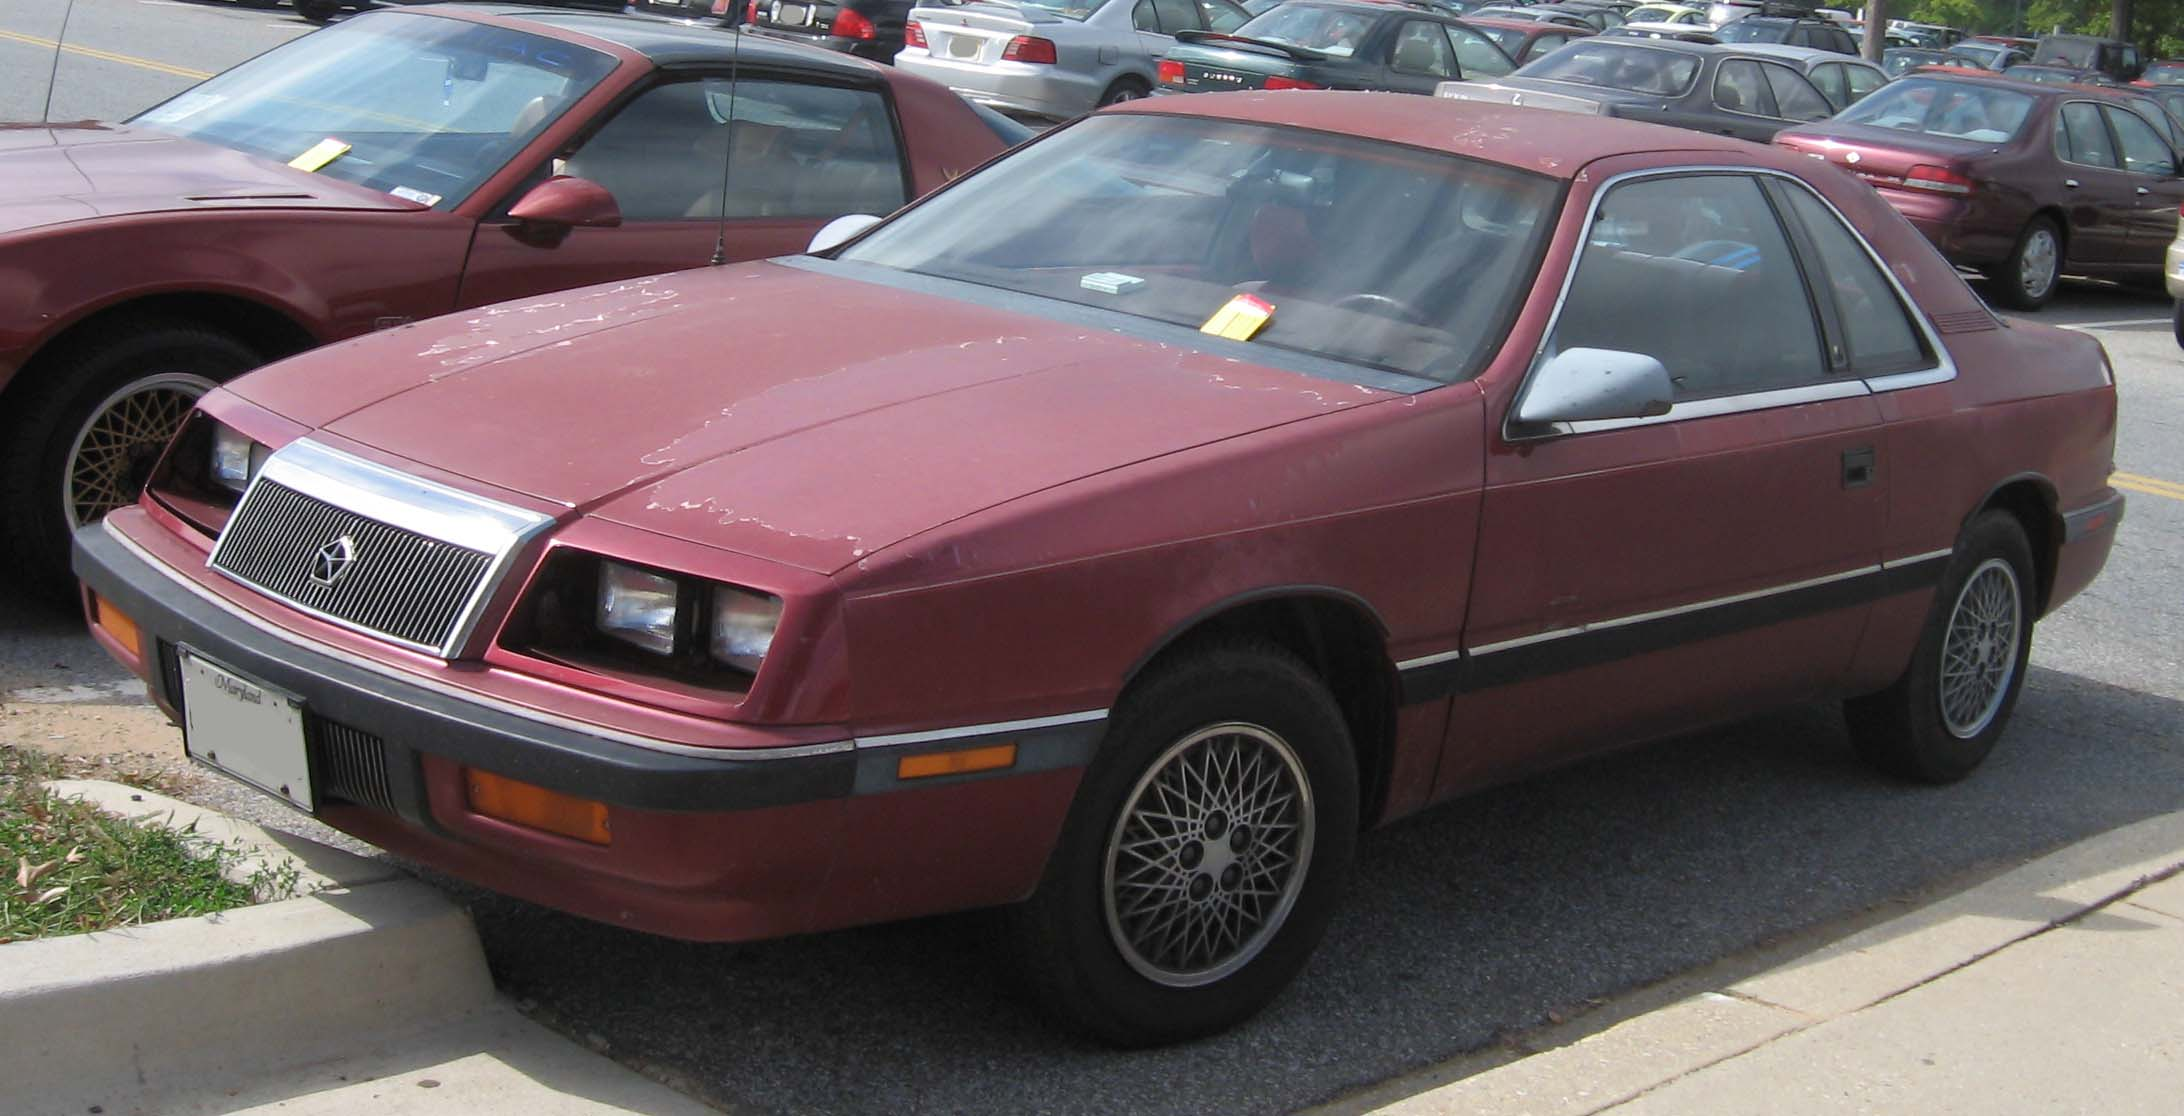 file chrysler lebaron coupe wikimedia commons. Black Bedroom Furniture Sets. Home Design Ideas